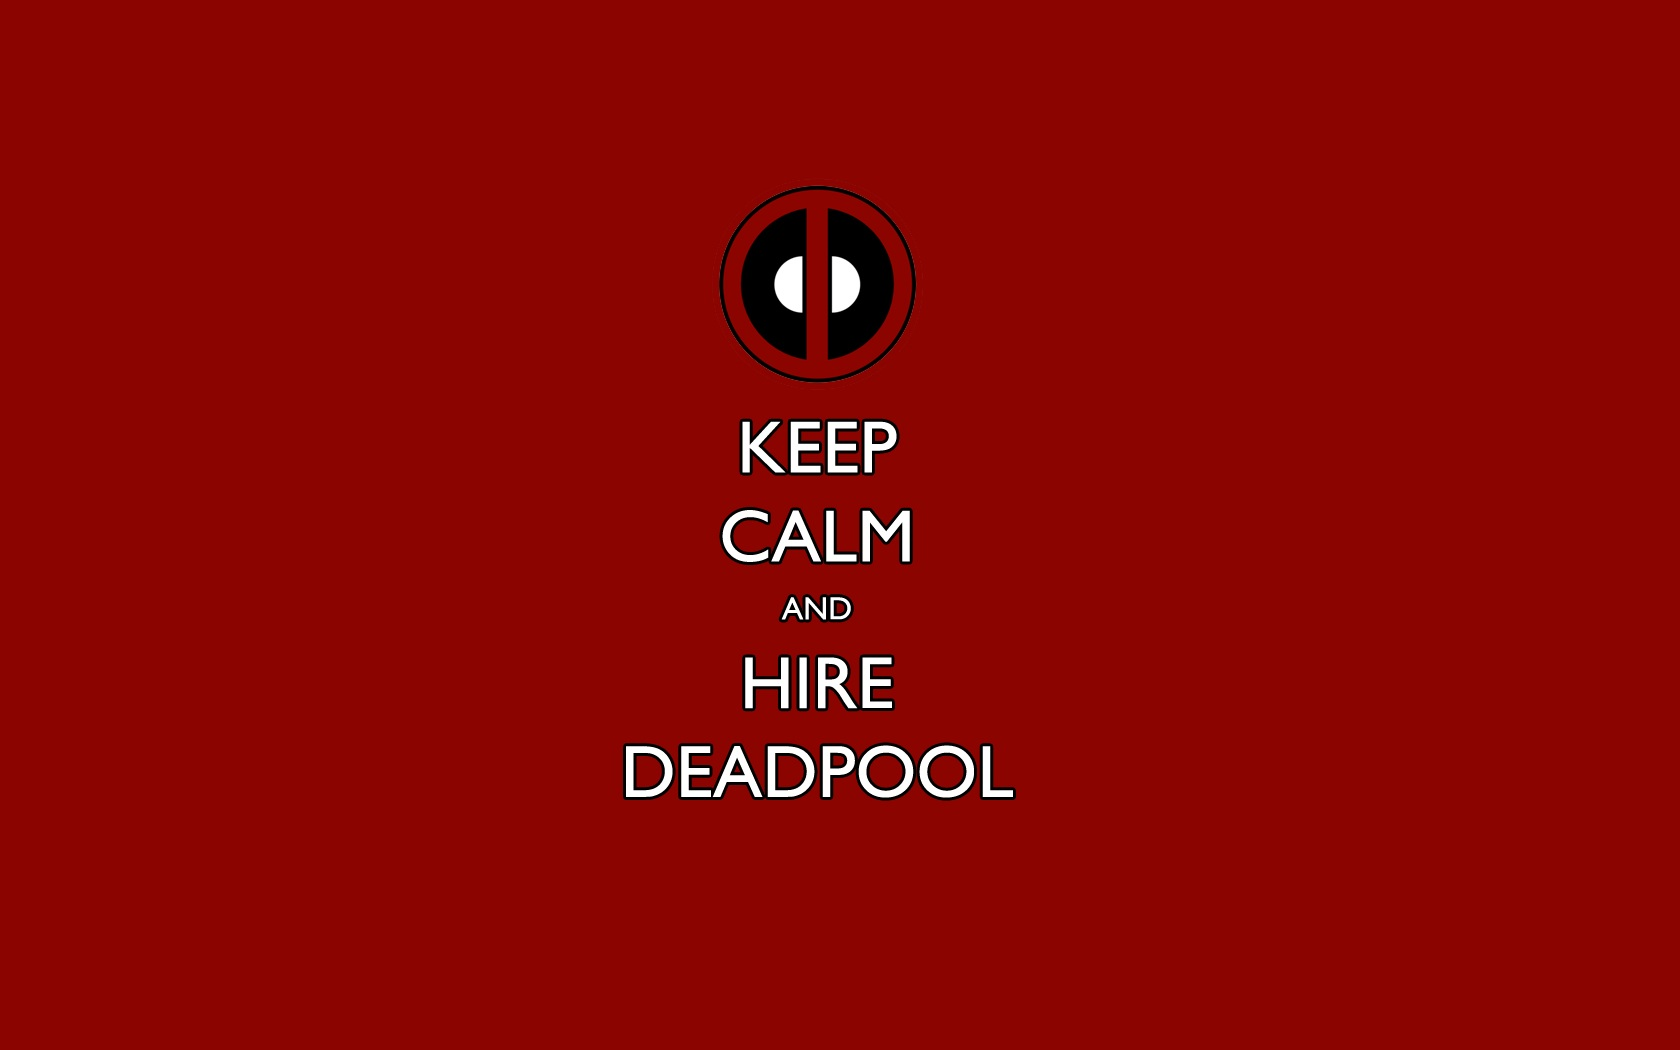 keep-calm-and-hire-deadpool-wallpaper